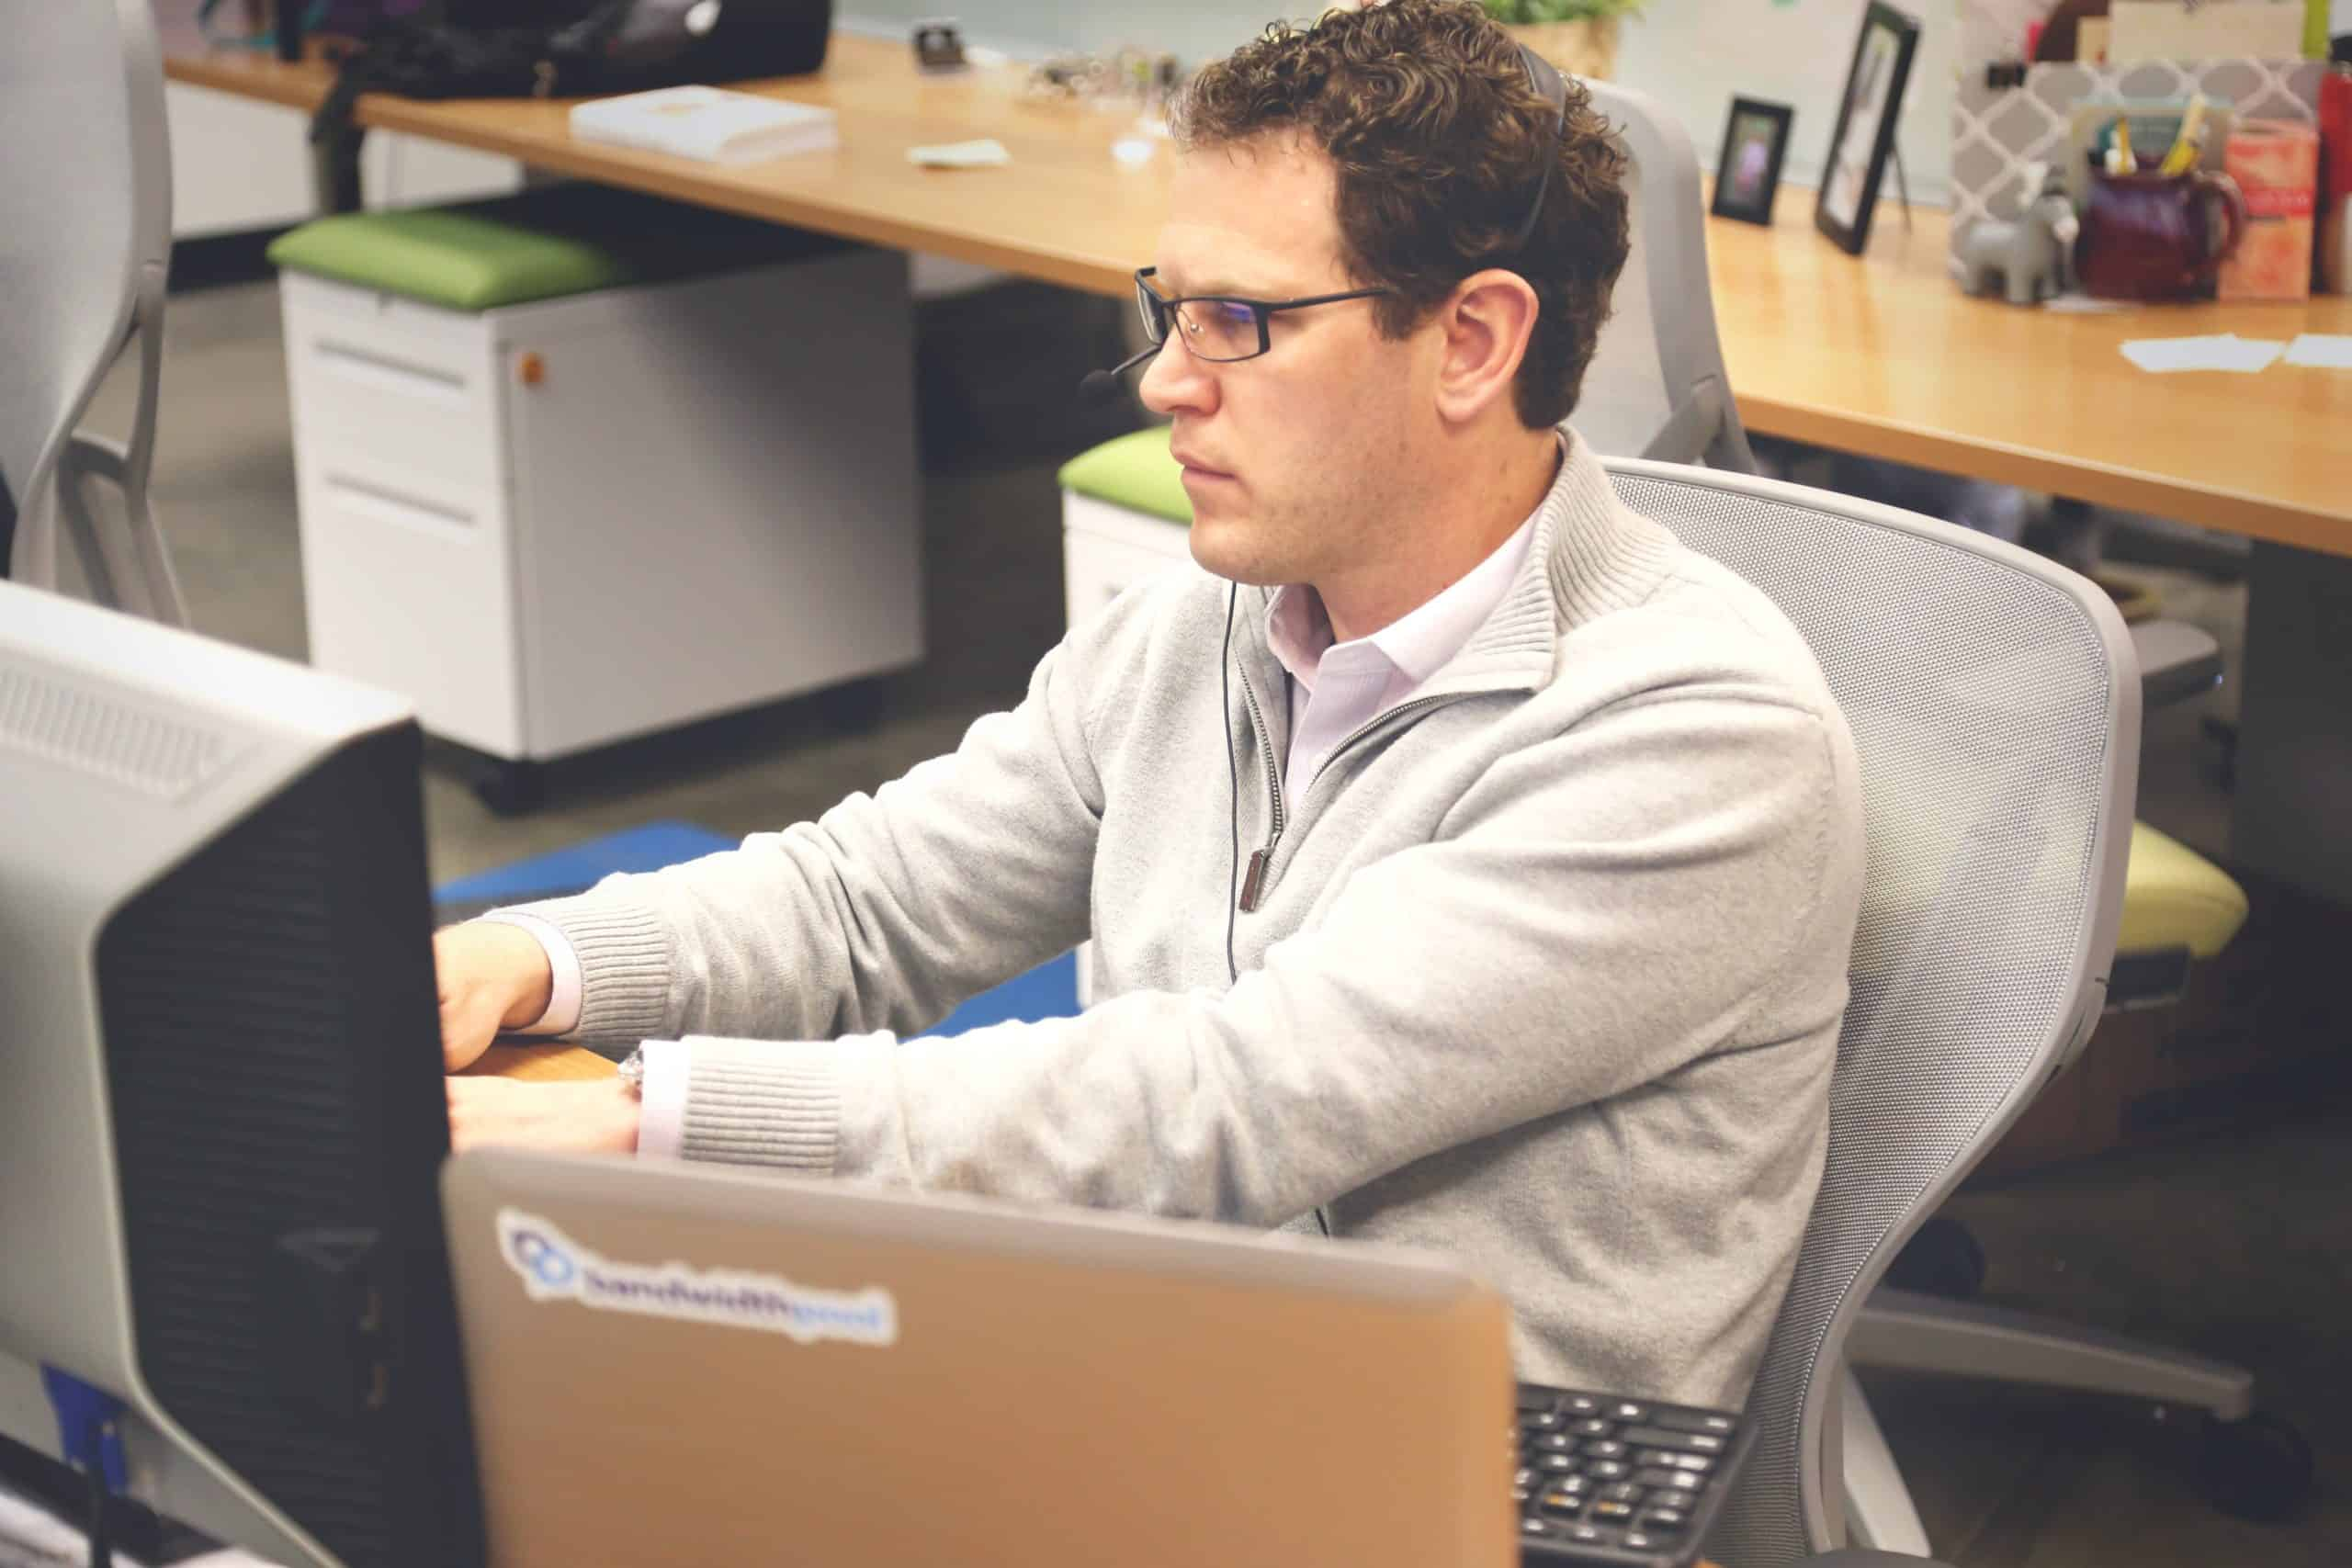 Telecommuting Type Of Social Work Jobs That Are Highly Convenient